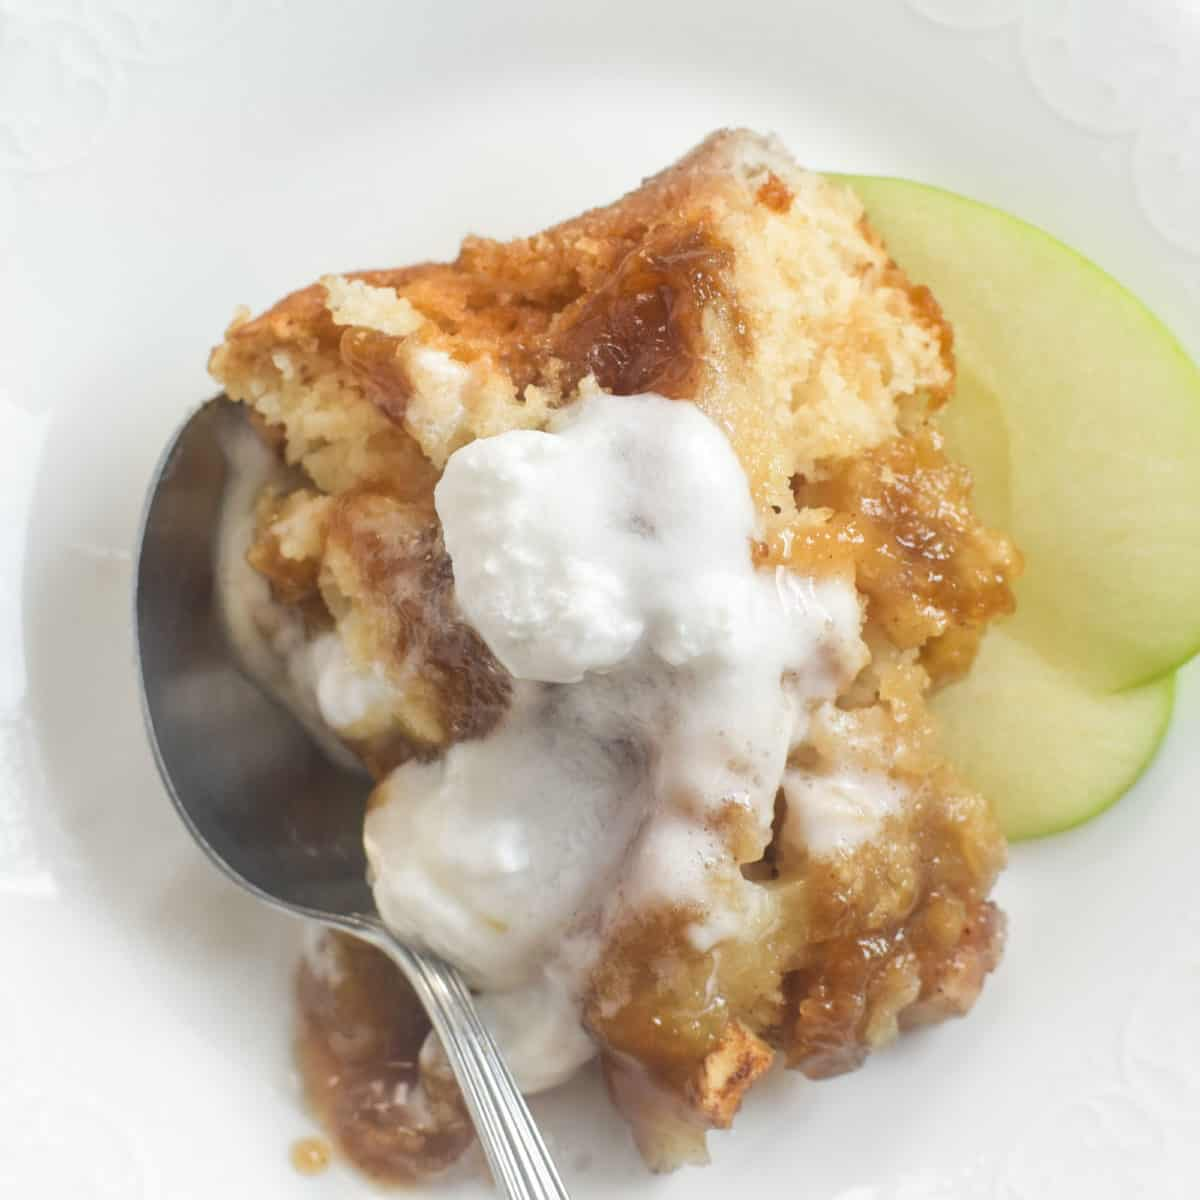 A close up of apple cobbler in a spoon.